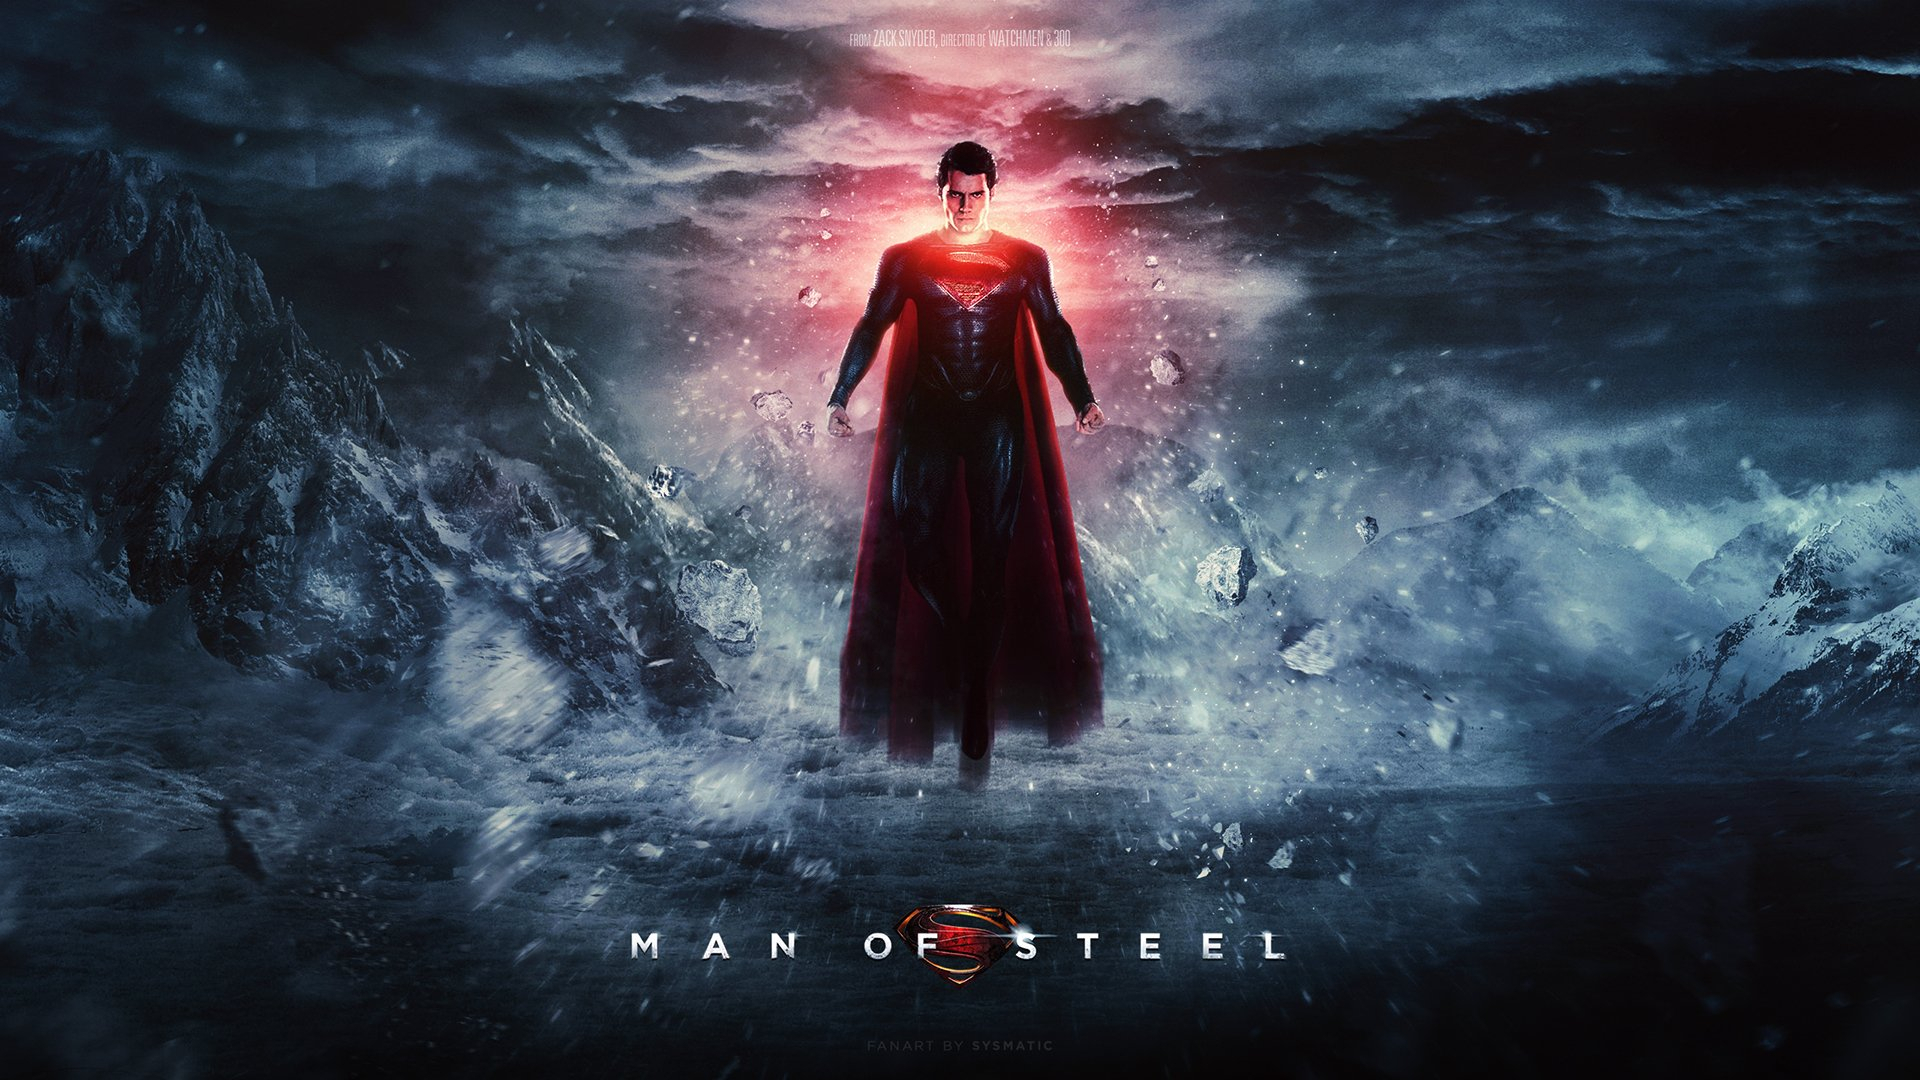 man of steel wallpaper superman movie 02 | digitalart.io